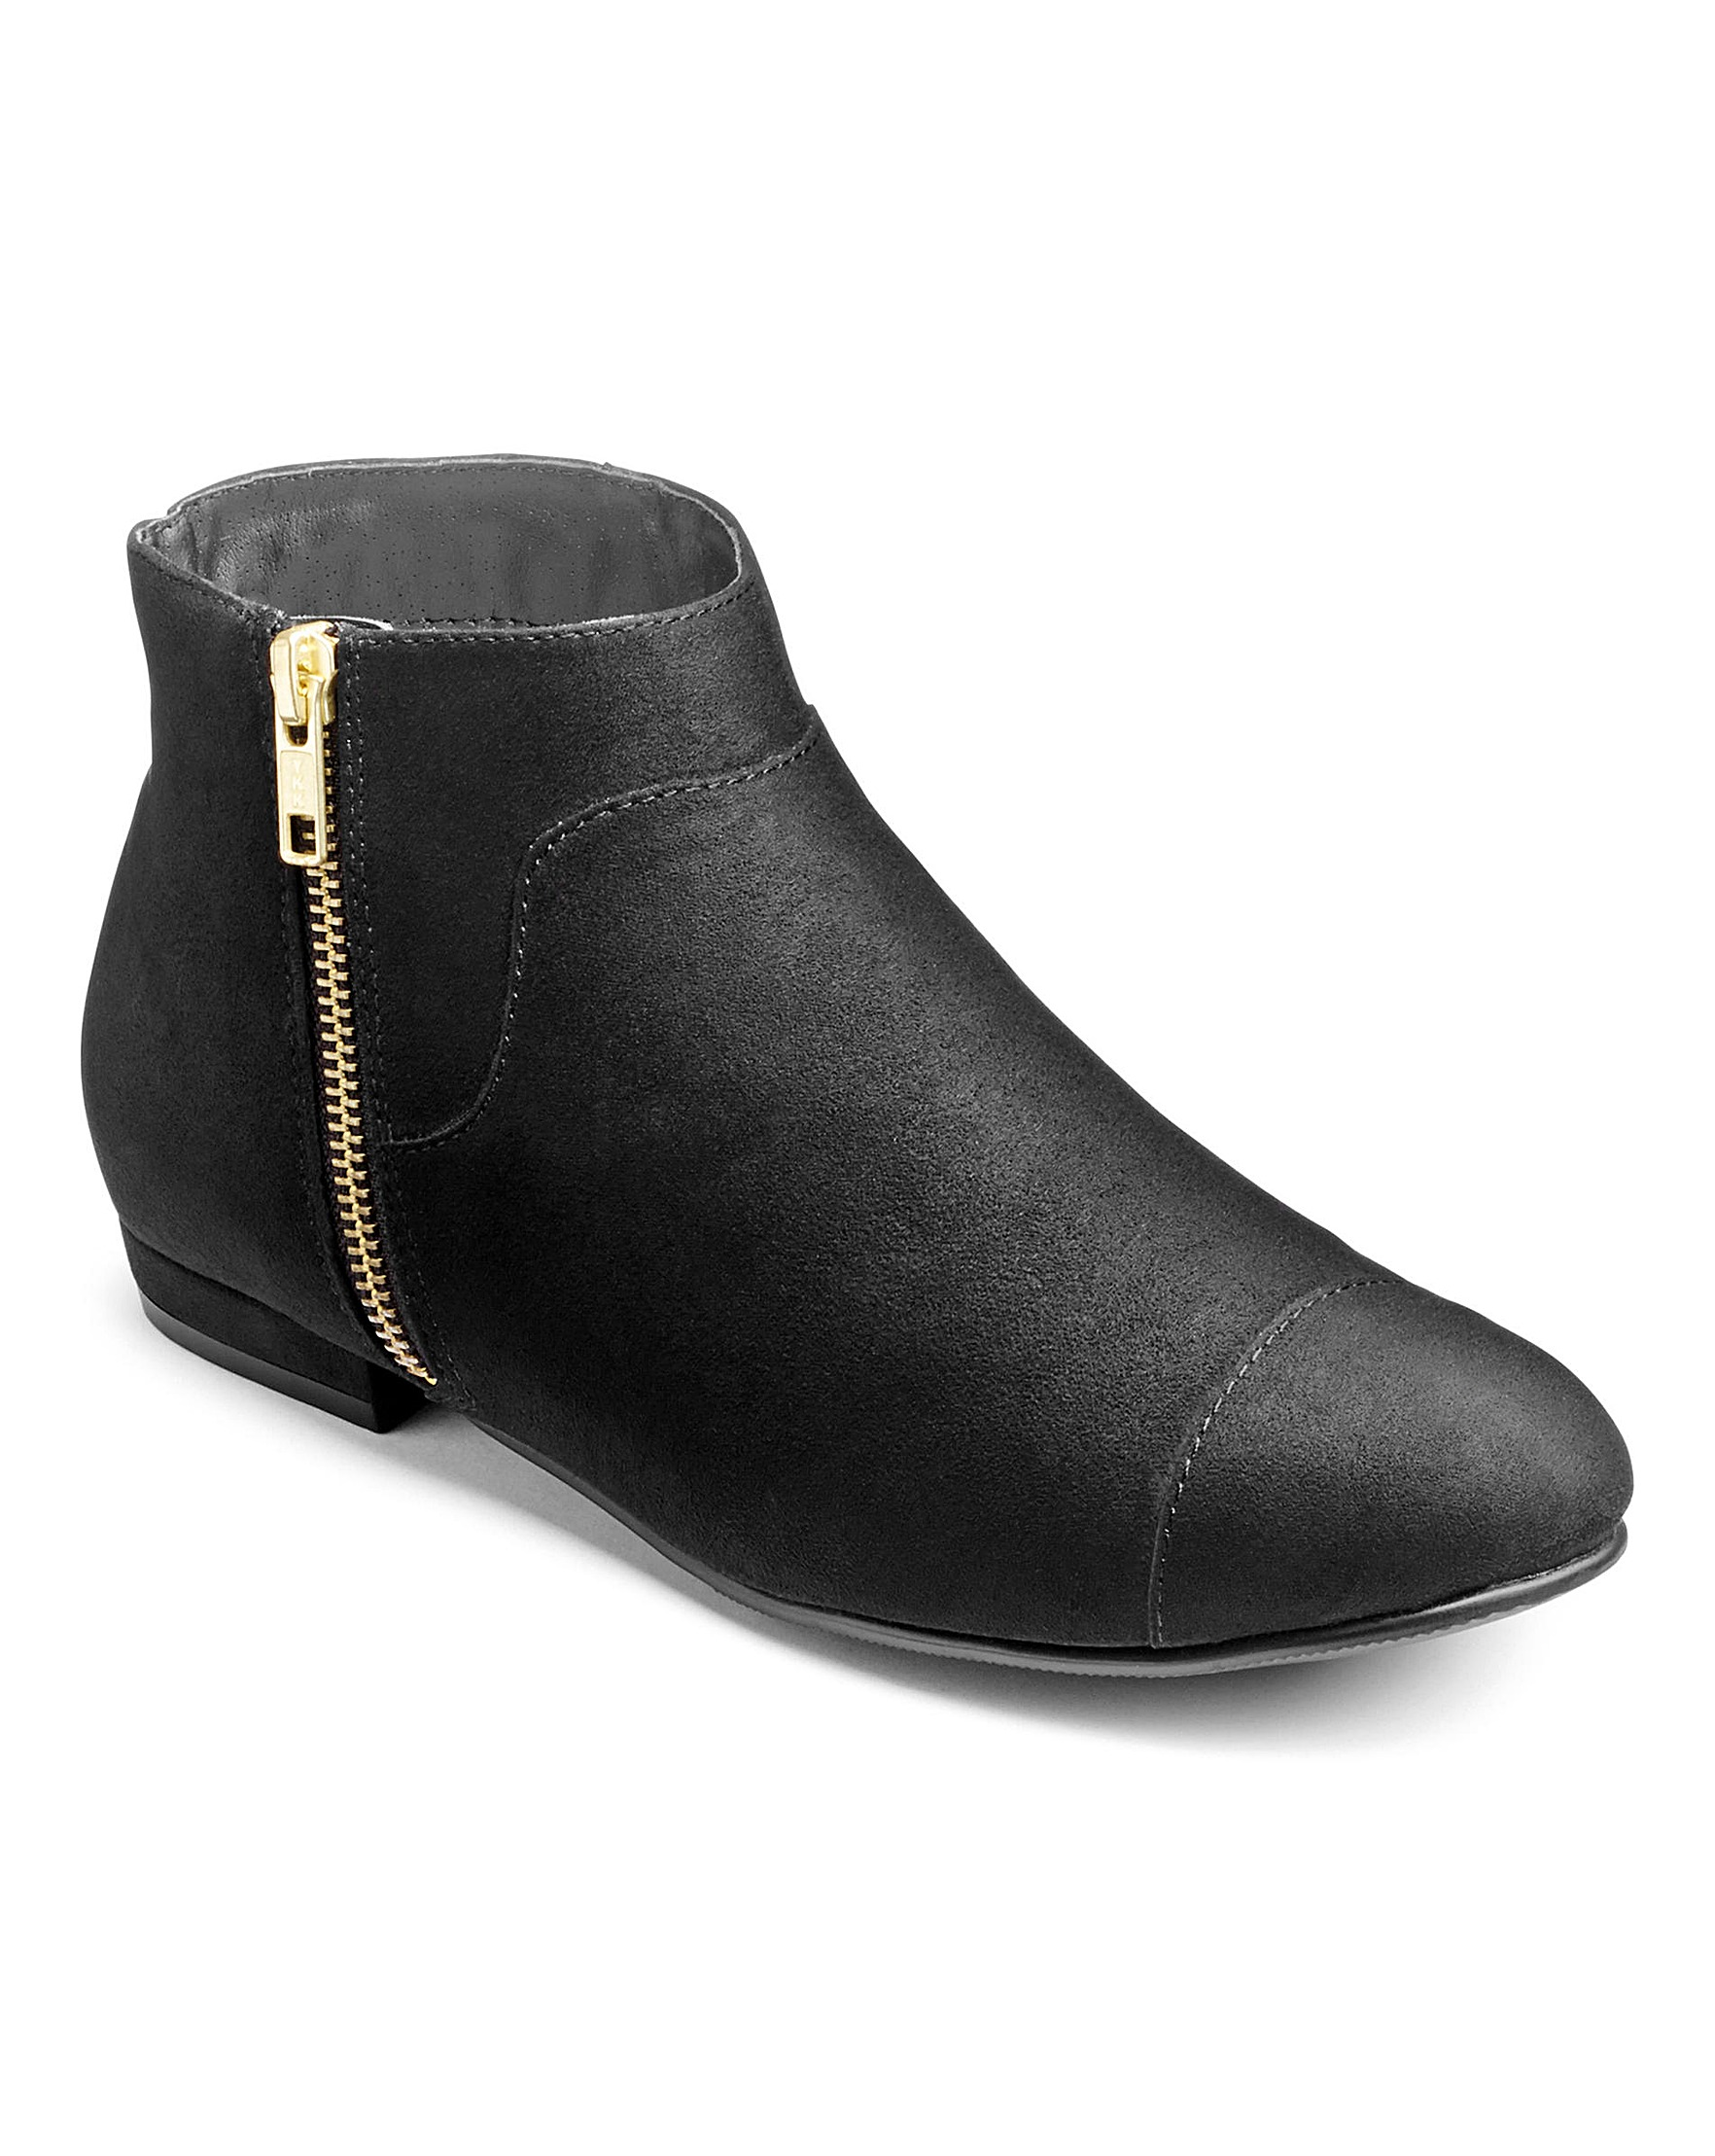 62ebf521b3c Sole Diva Zip Ankle Boots Wide E Fit